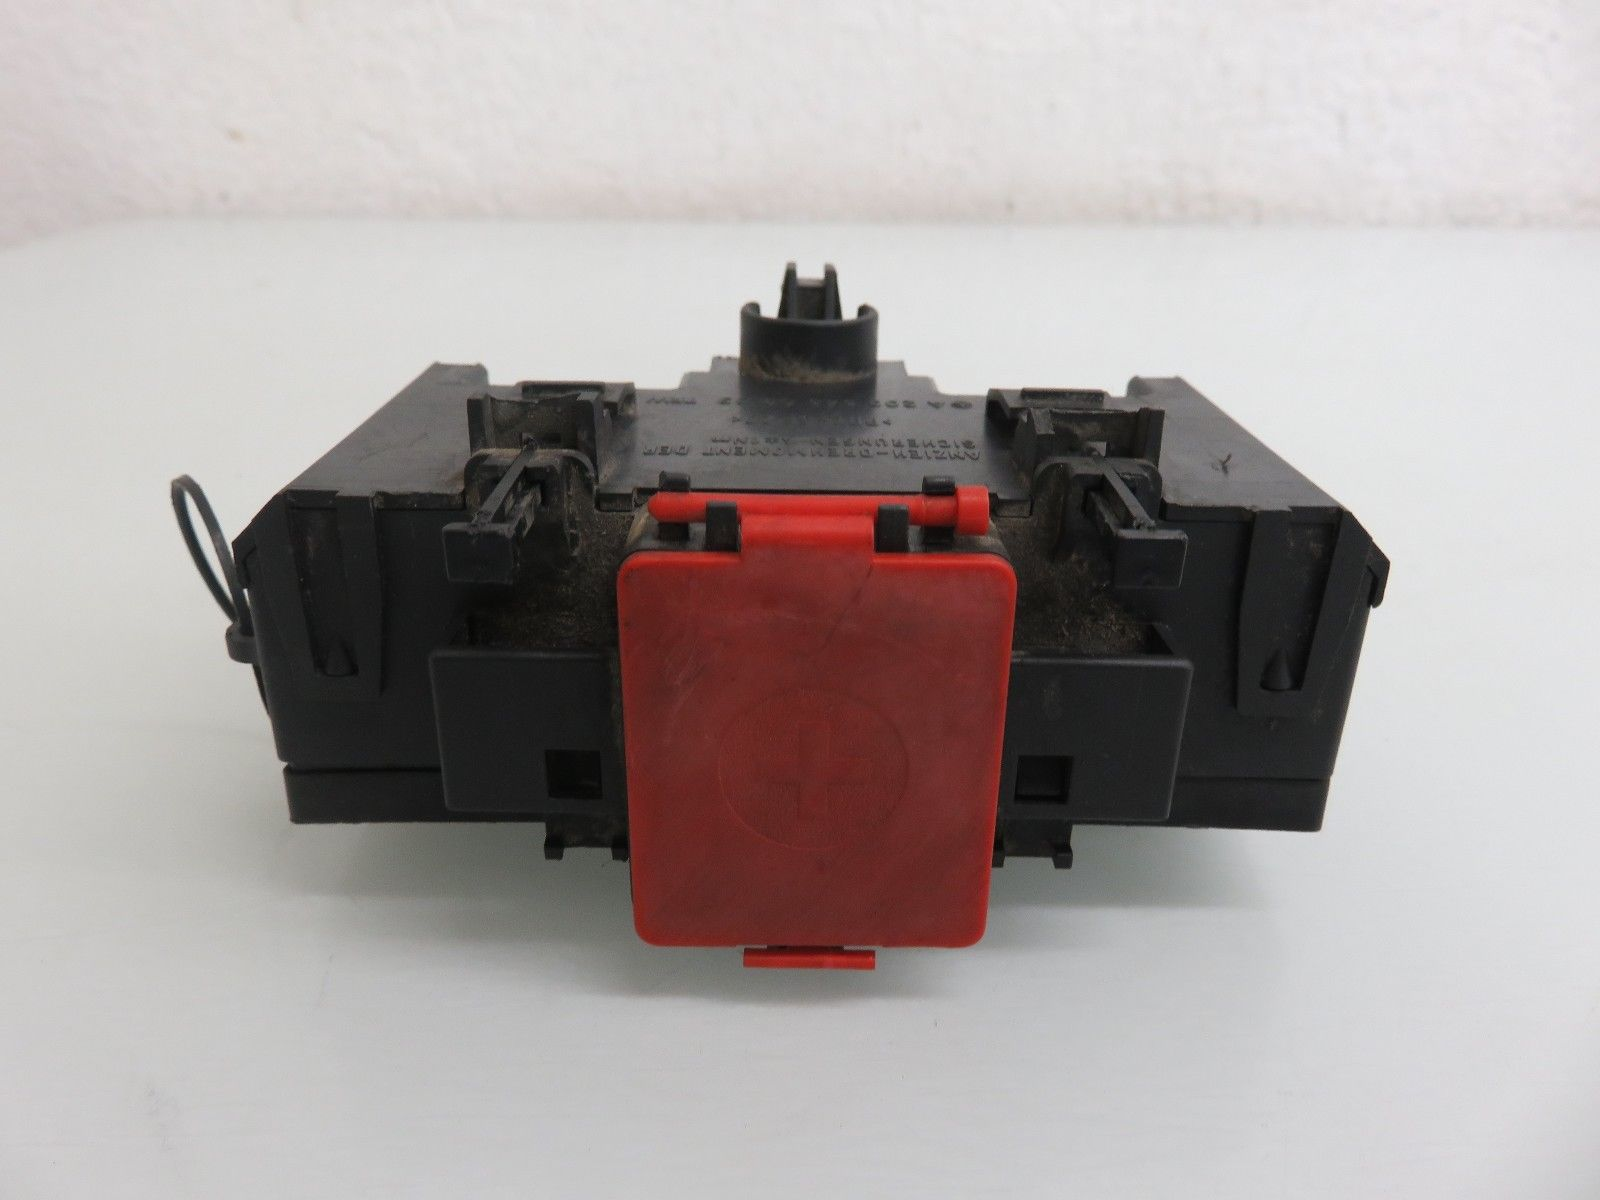 01-07 MERCEDES-BENZ W203 C230 C240 TERMINAL FUSE BOX POSITIVE NEGATIVE  CONNECTOR 2035450803